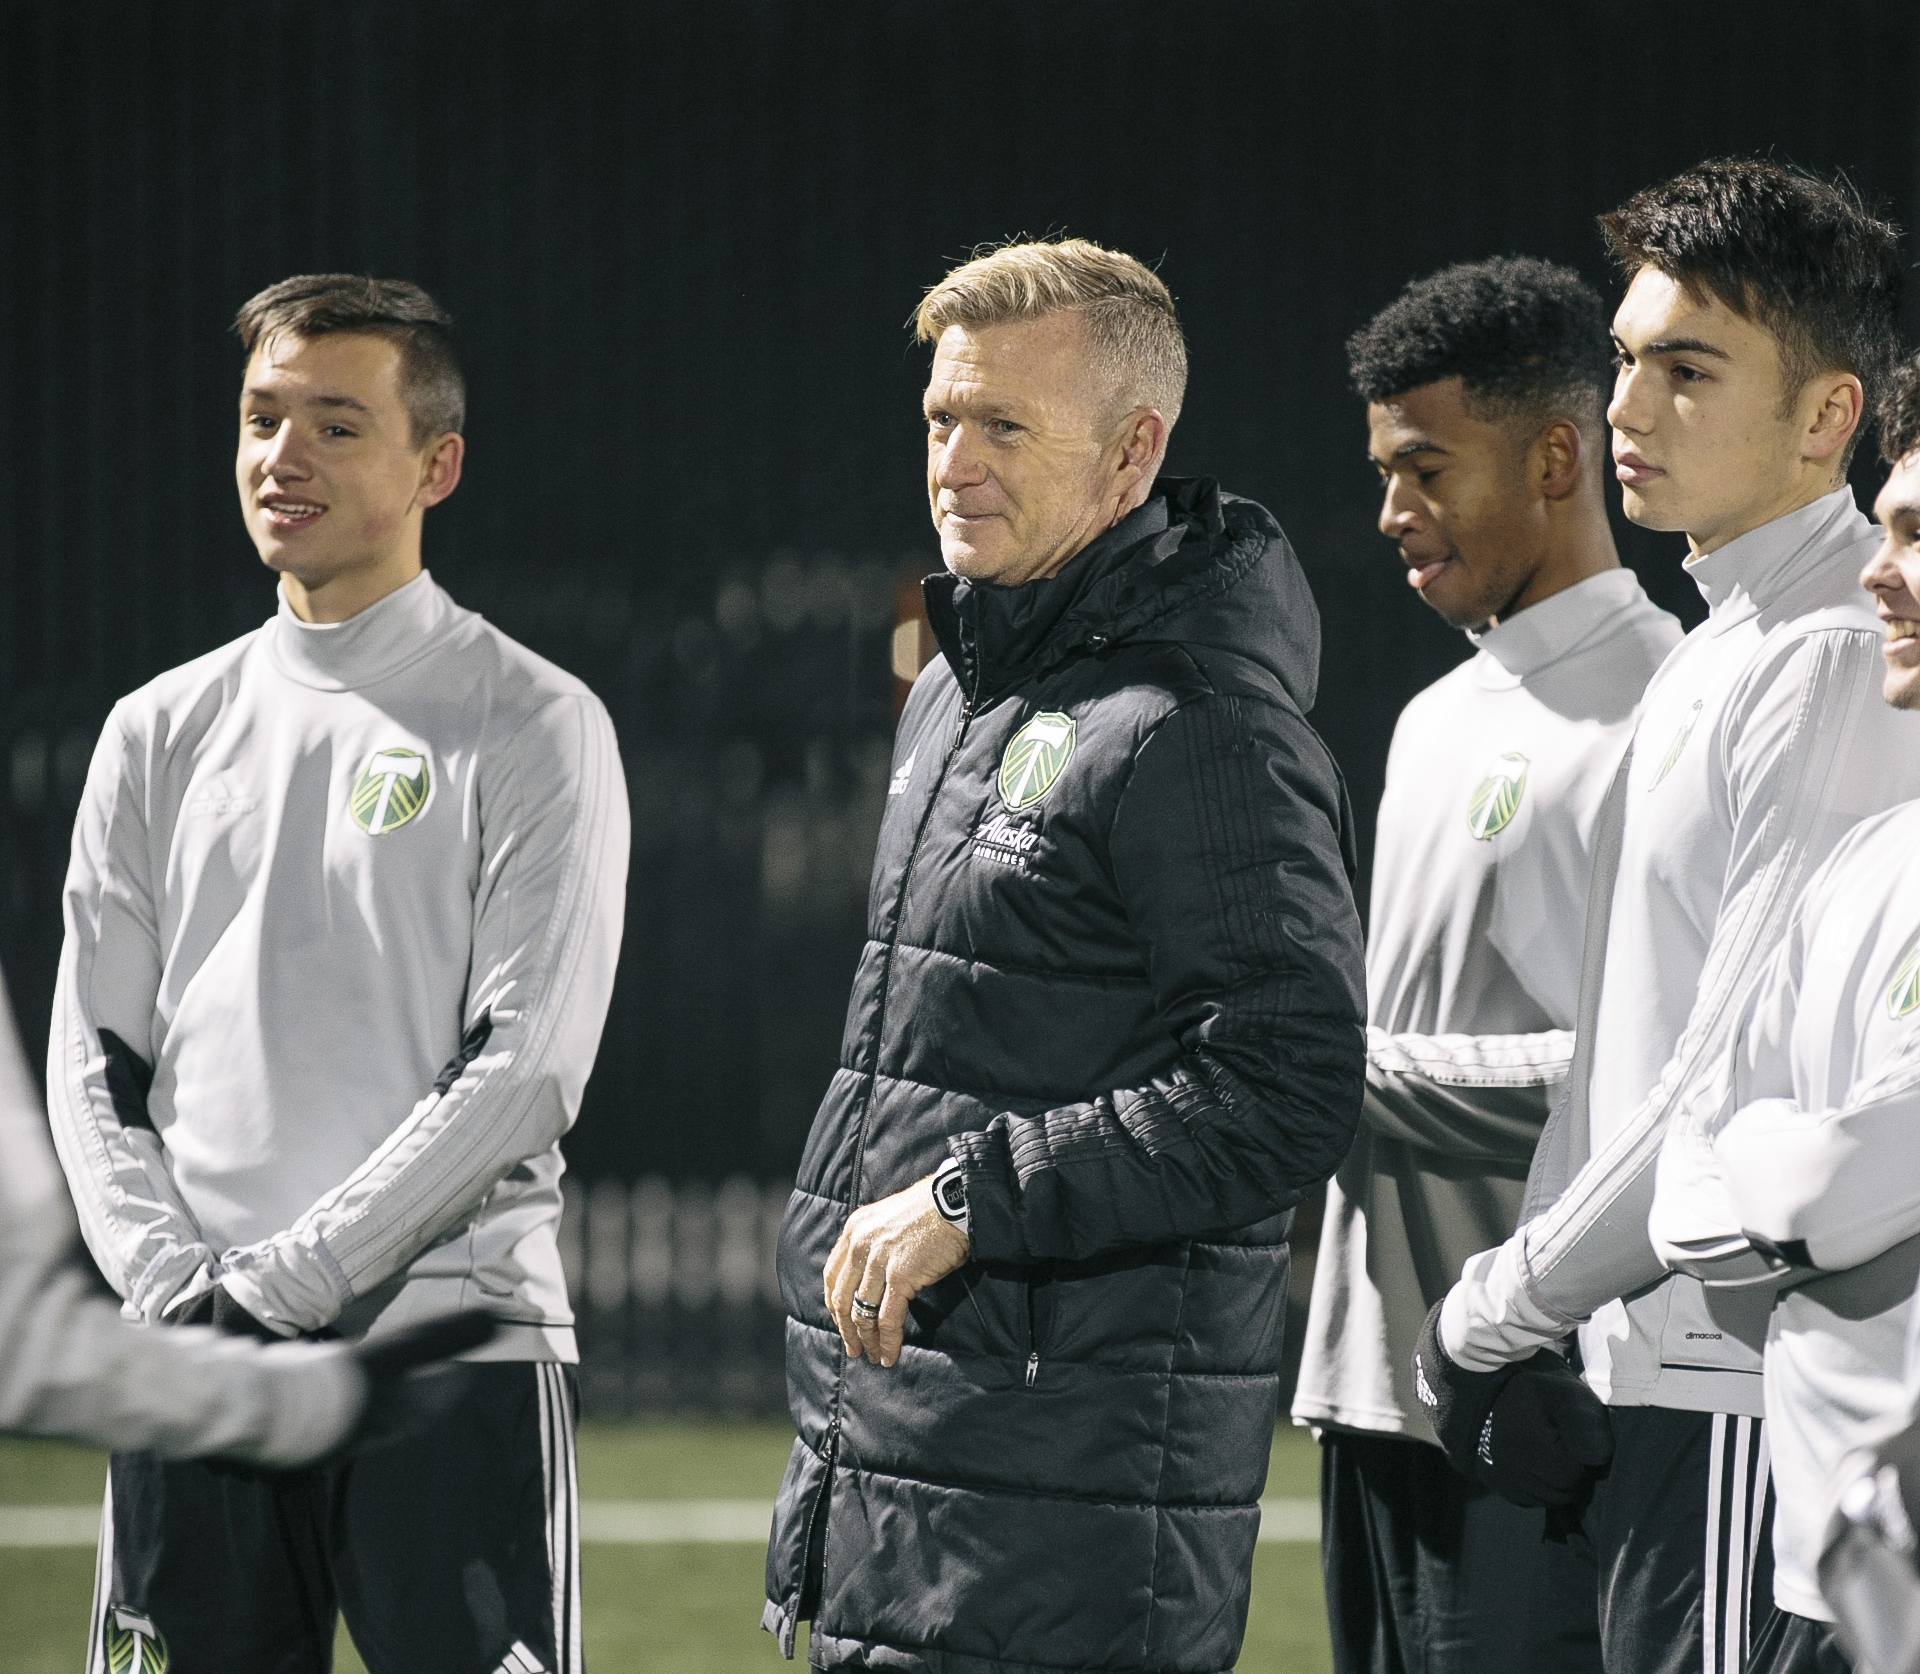 Sunderland is the current Portland Timbers Youth Technical Director, where he oversees all aspects of the academy and player development system, including directing the development curriculum guidelines, and monitoring academy player and staff development.